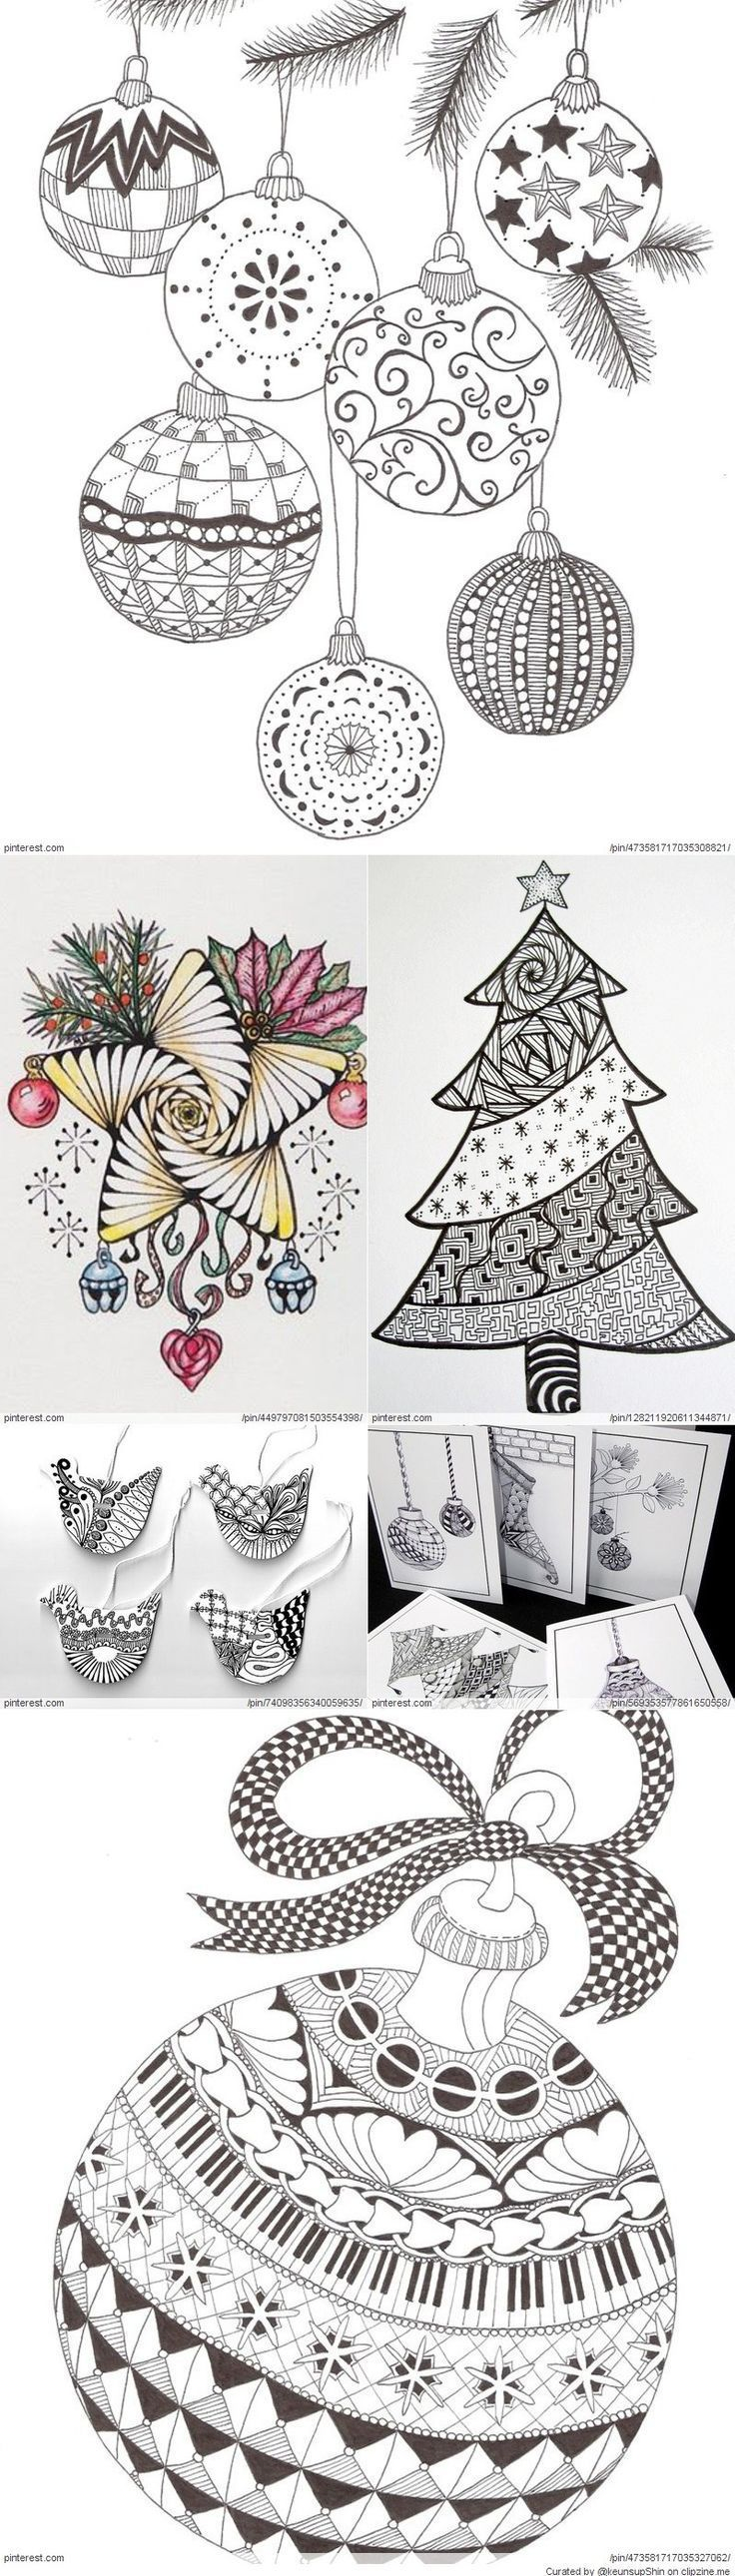 best embroidered goodness images on pinterest snowflakes